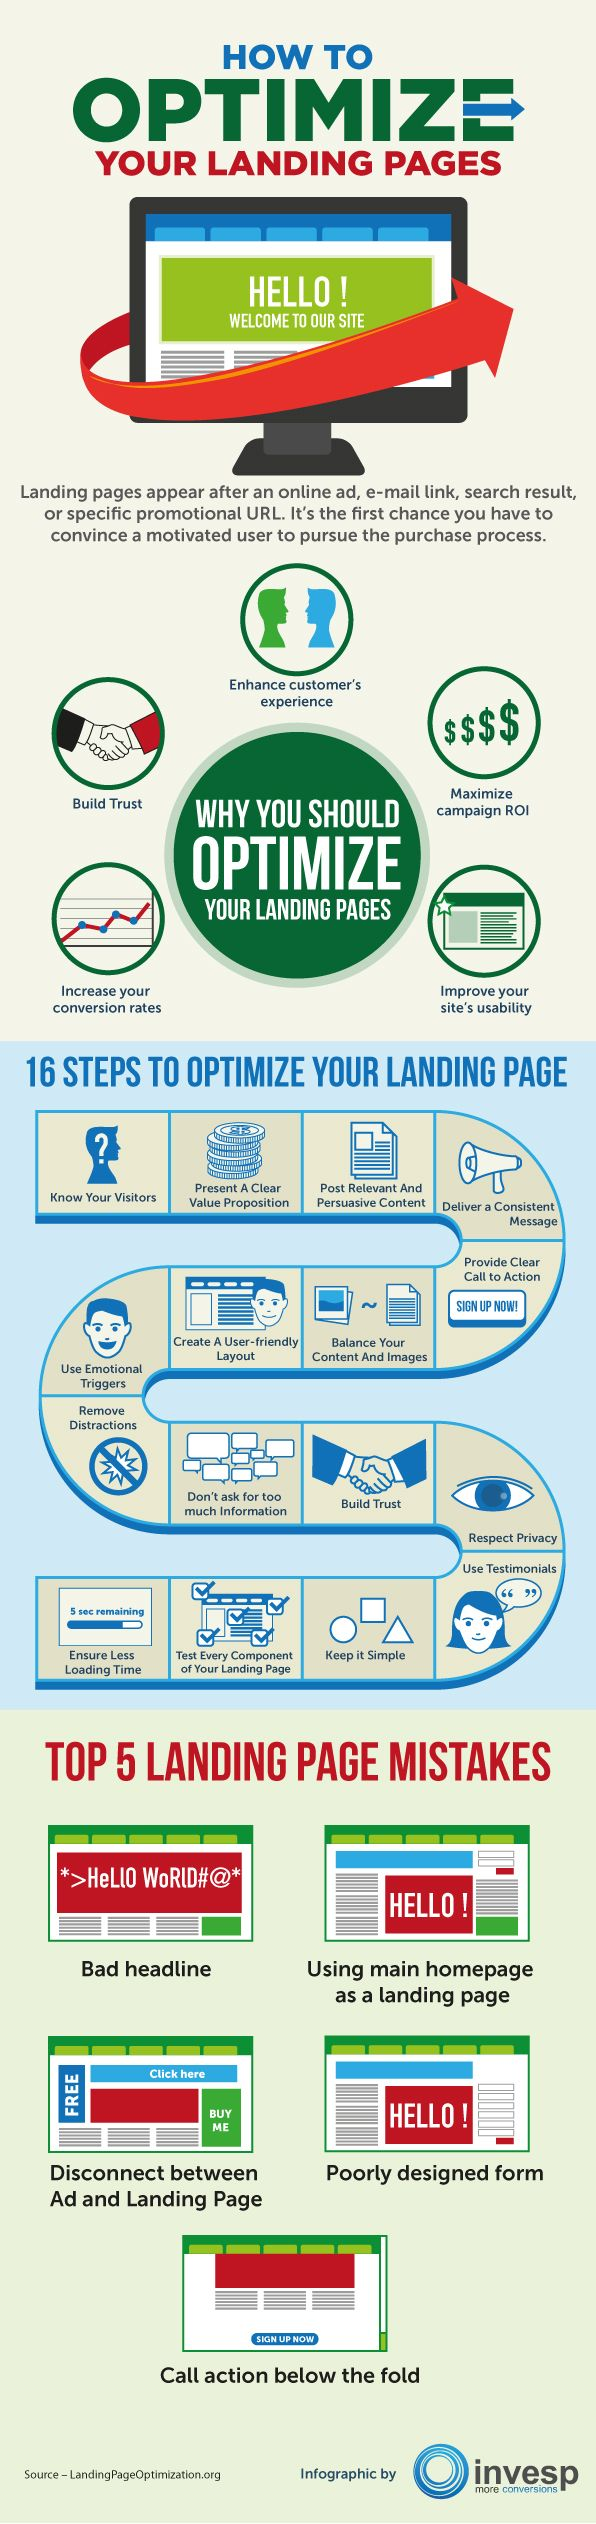 Learn-To-Optimize-Your-Landing-Pages-infographic